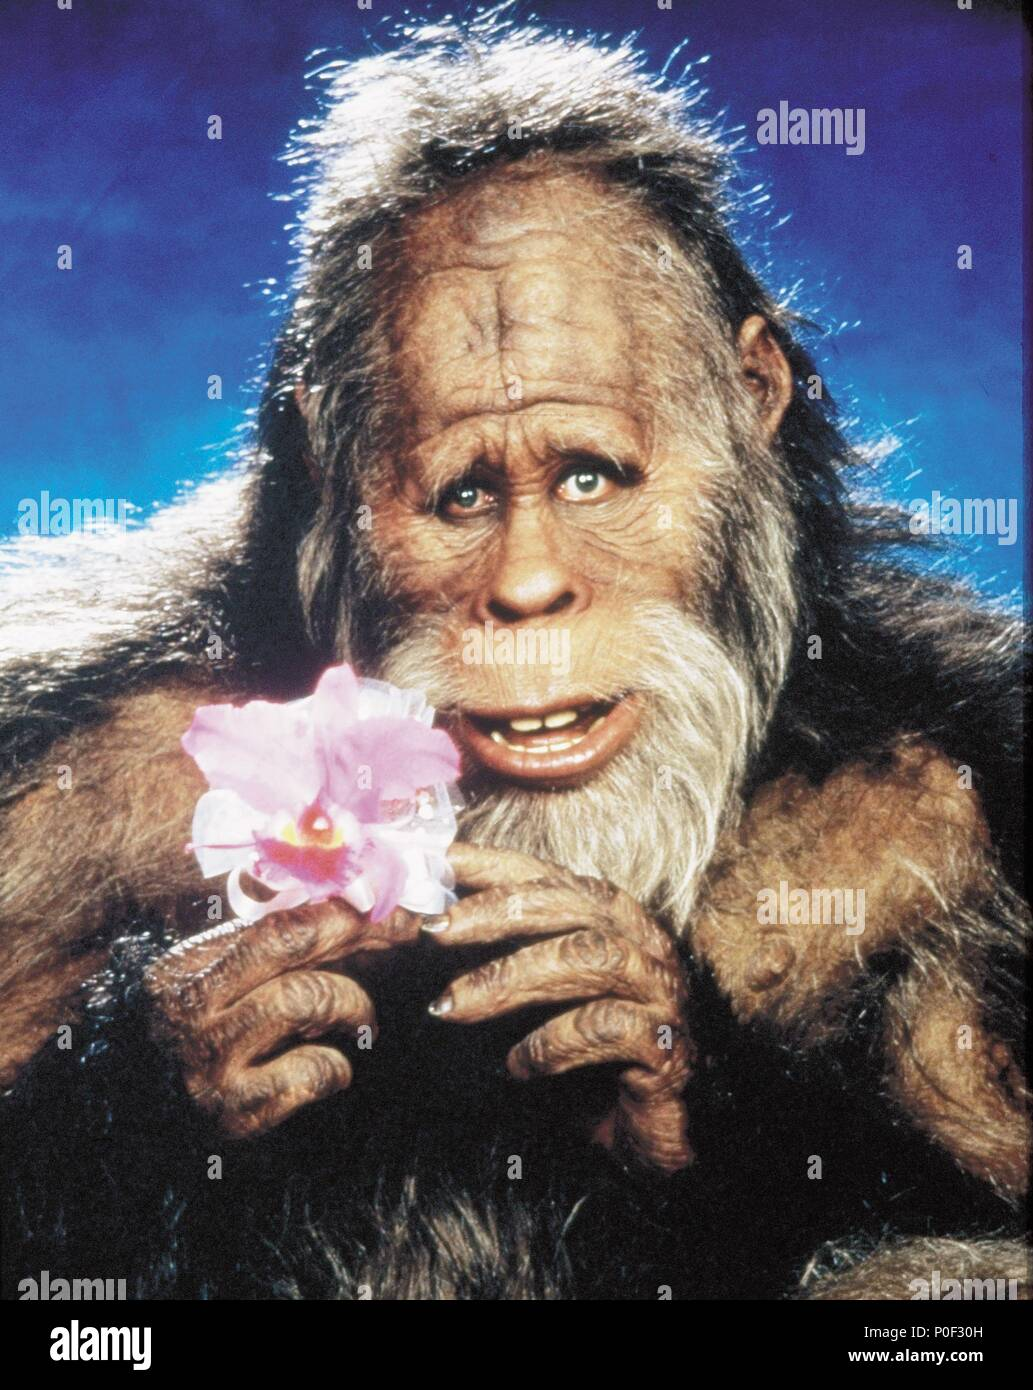 Harry And The Hendersons Stock Photos & Harry And The ...Kevin Peter Hall Harry And The Hendersons